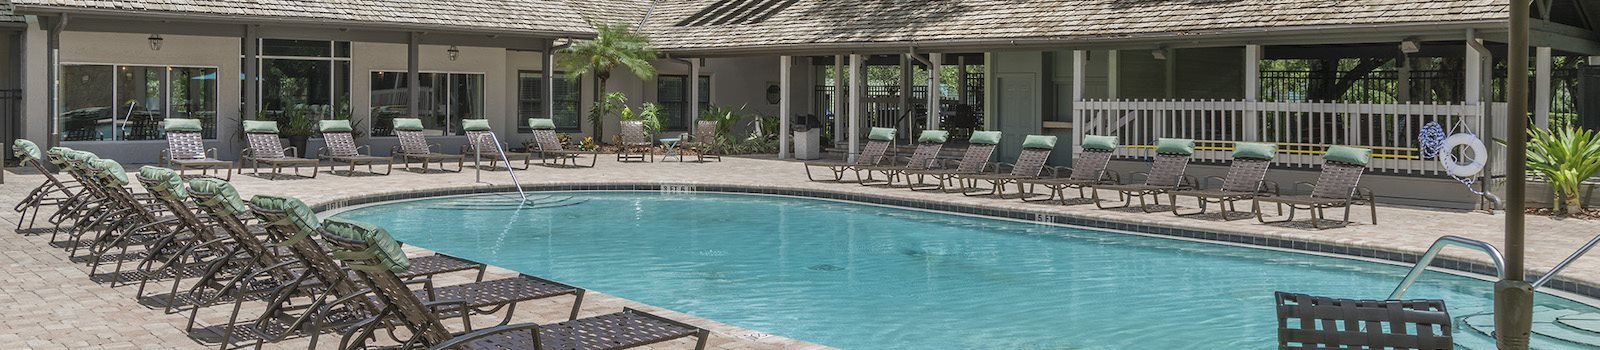 large pool with expansive sundeck, many deck chairs, and landscaping at The Retreat at Lakeland Apartments, Lakeland, FL